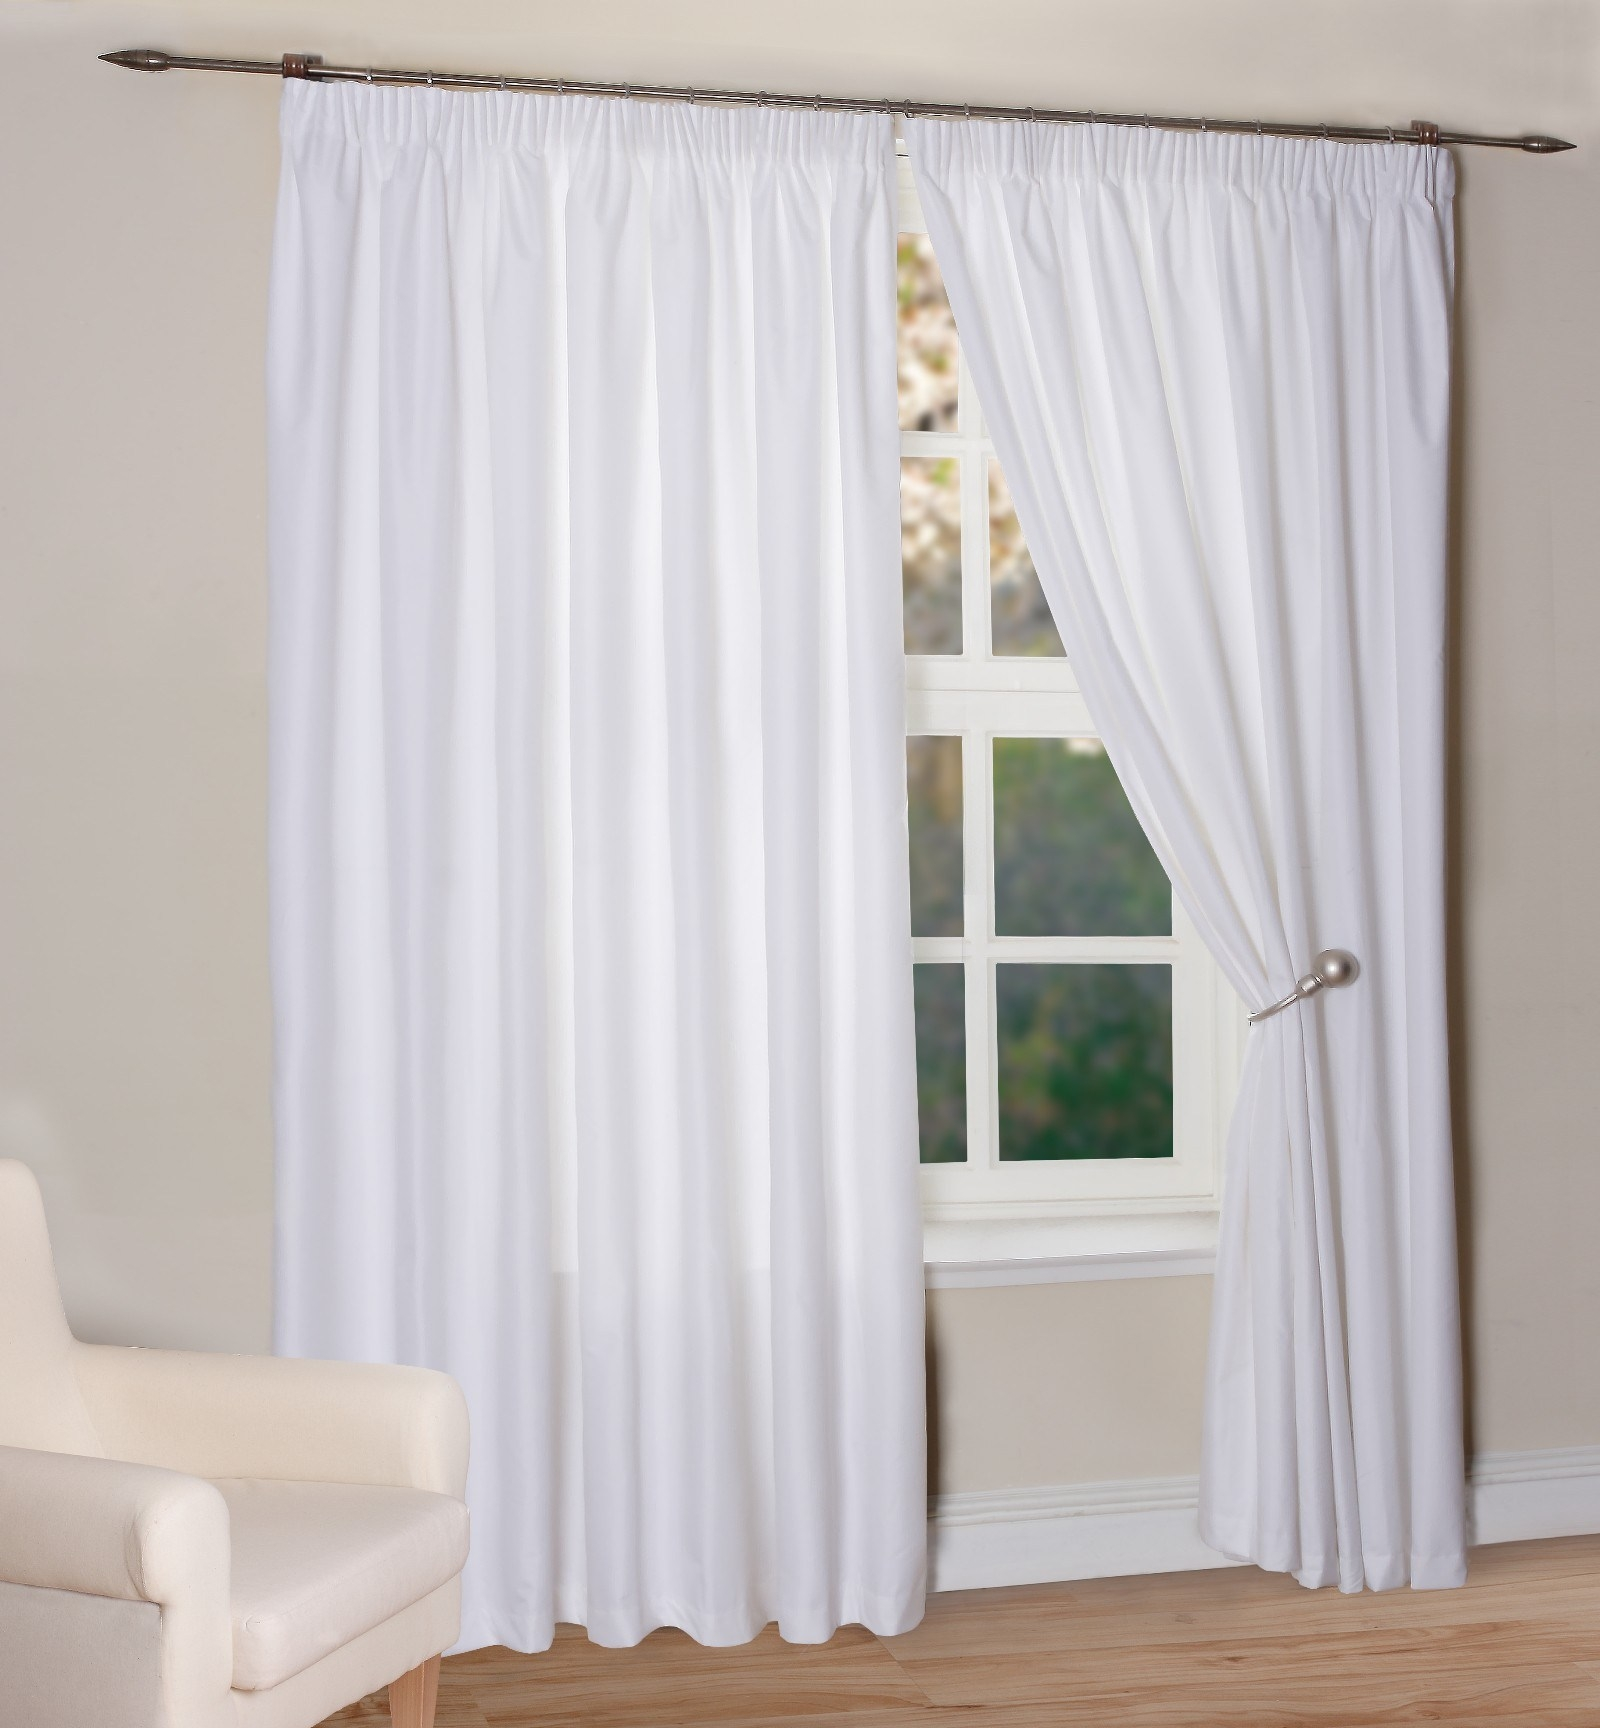 15 White Curtains With Blackout Lining Curtain Ideas